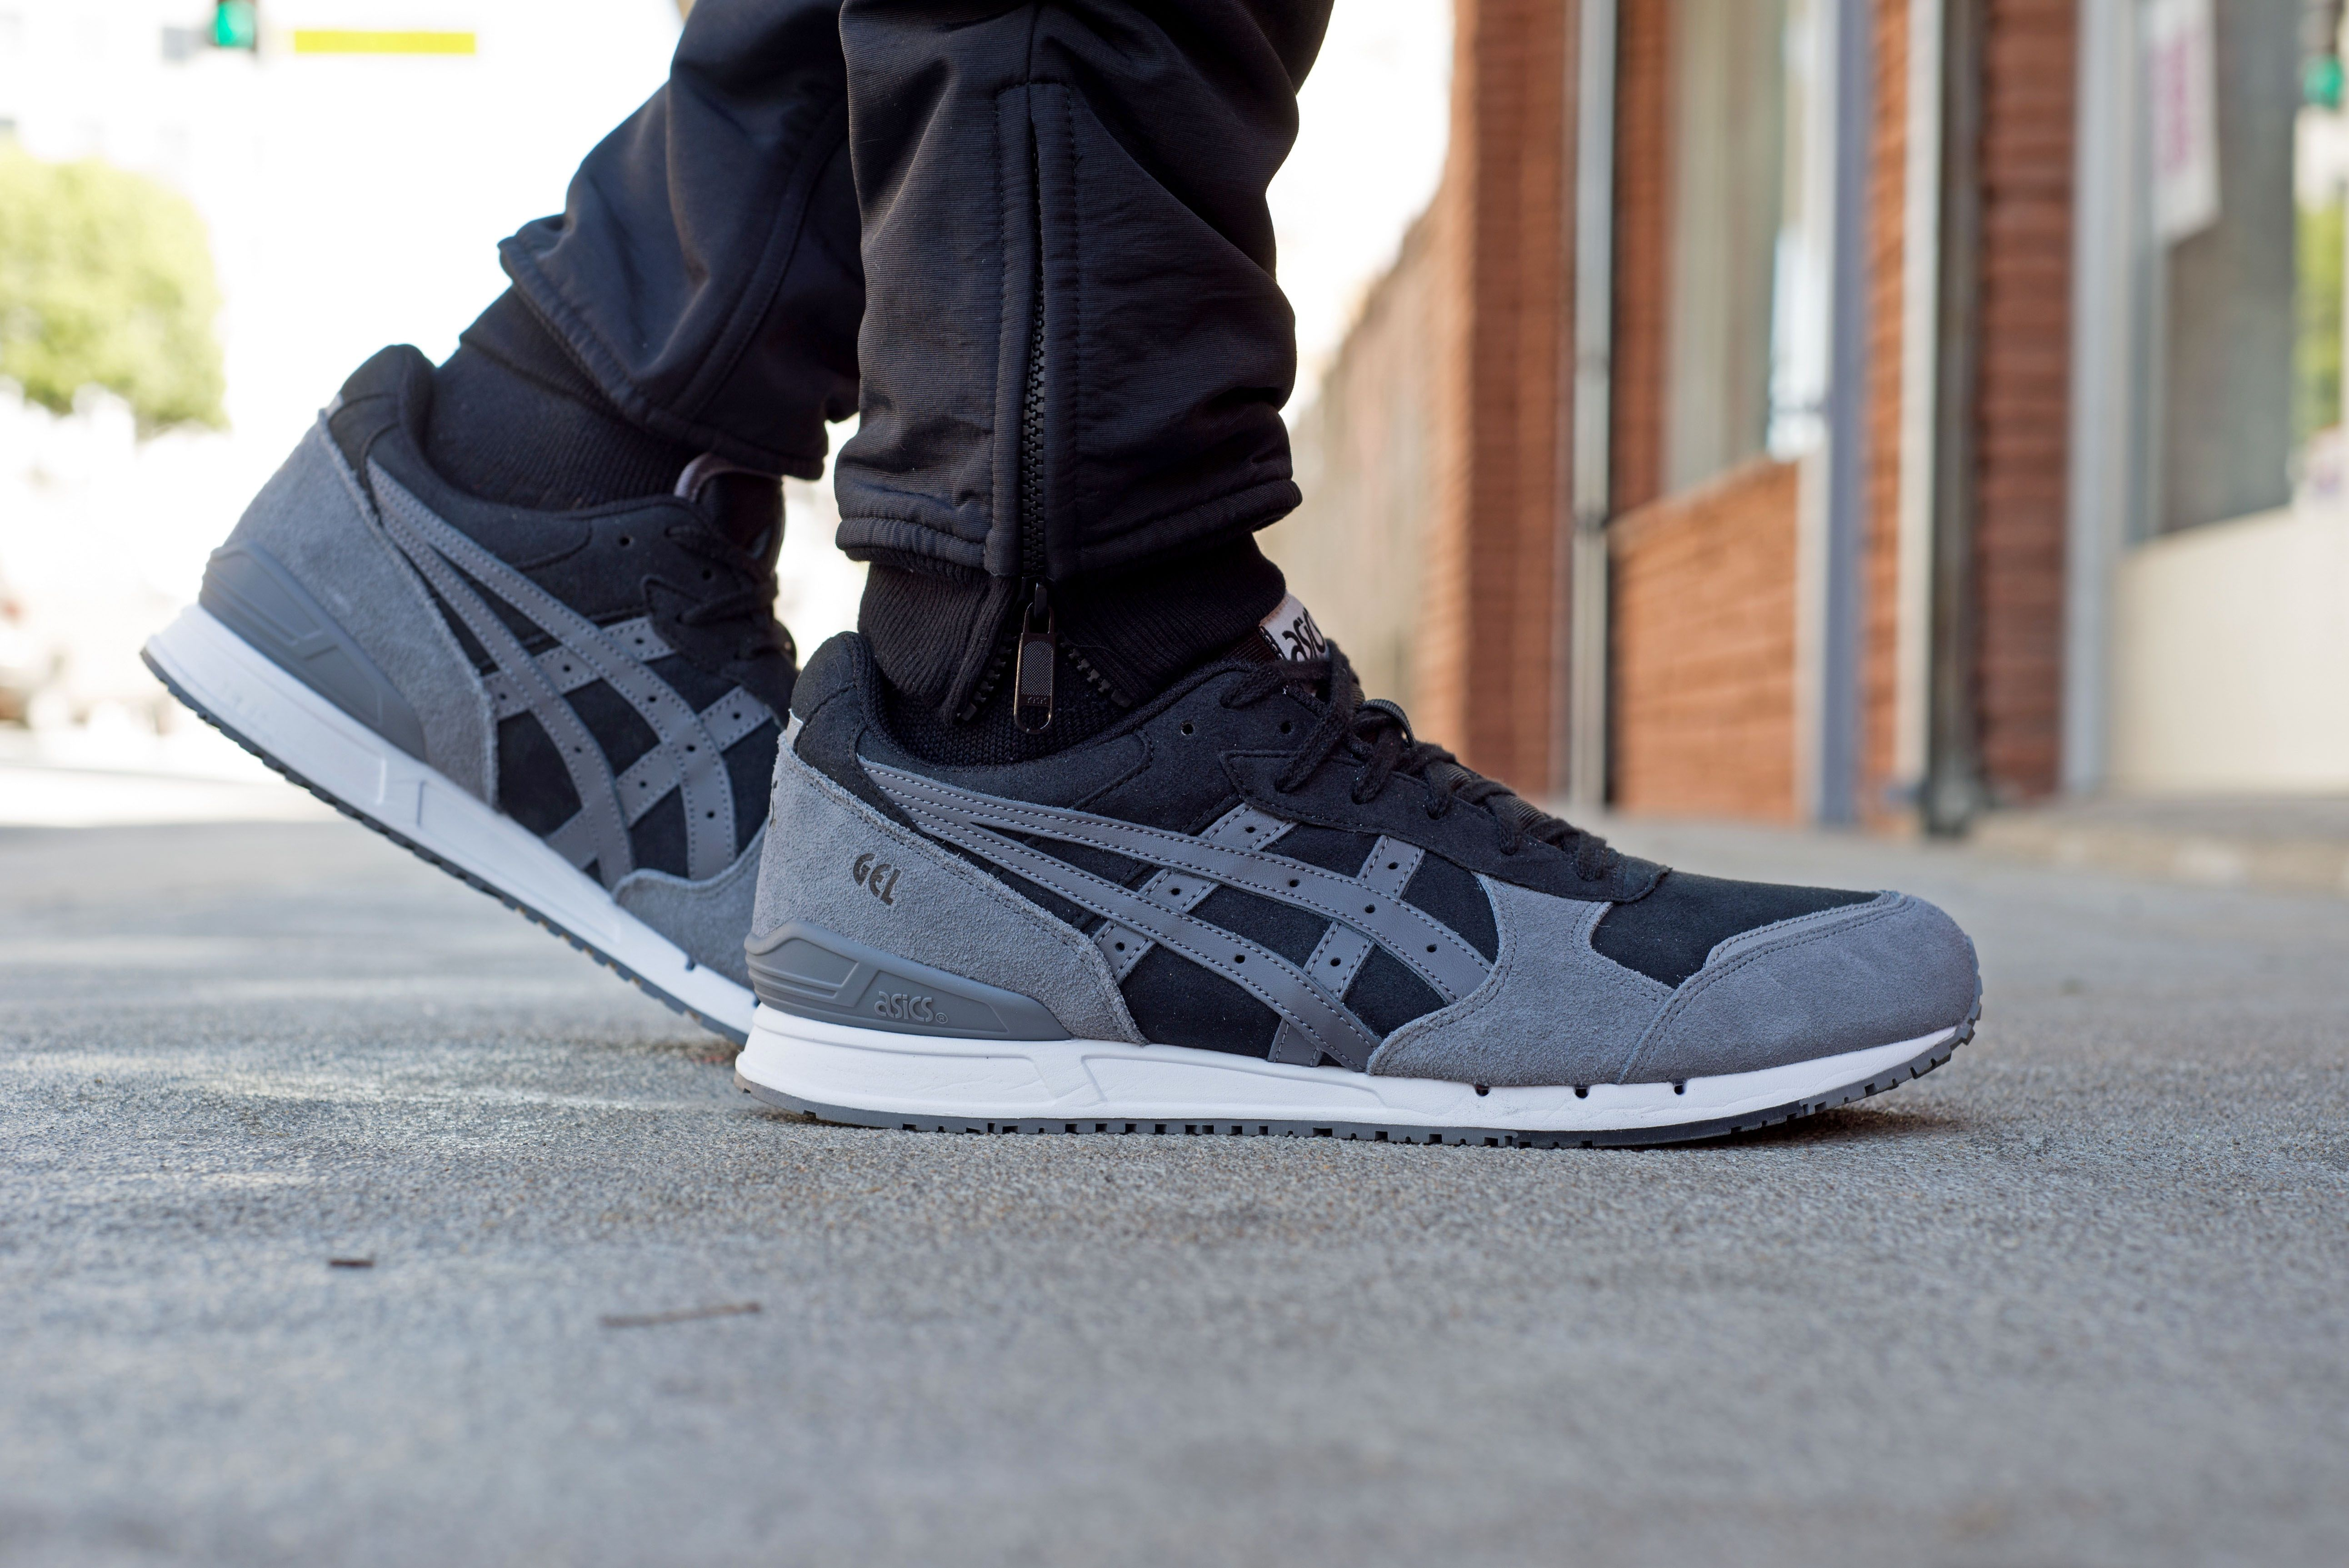 The ASICS Gel Classic Black/Grey takes the lead in today's On-Foot Look.